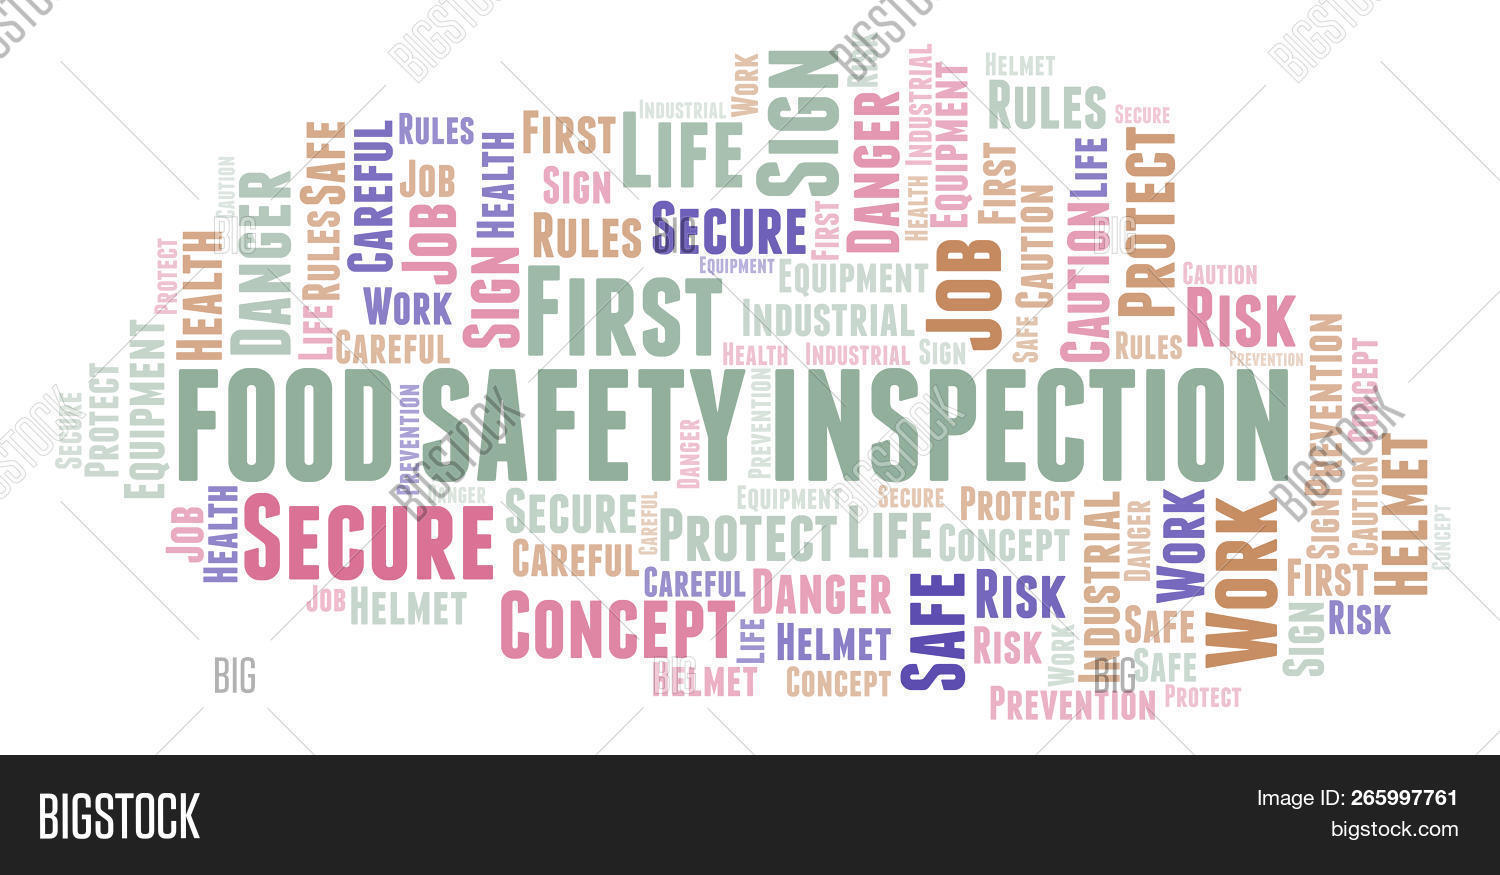 Food Safety Inspection Image & Photo (Free Trial)   Bigstock